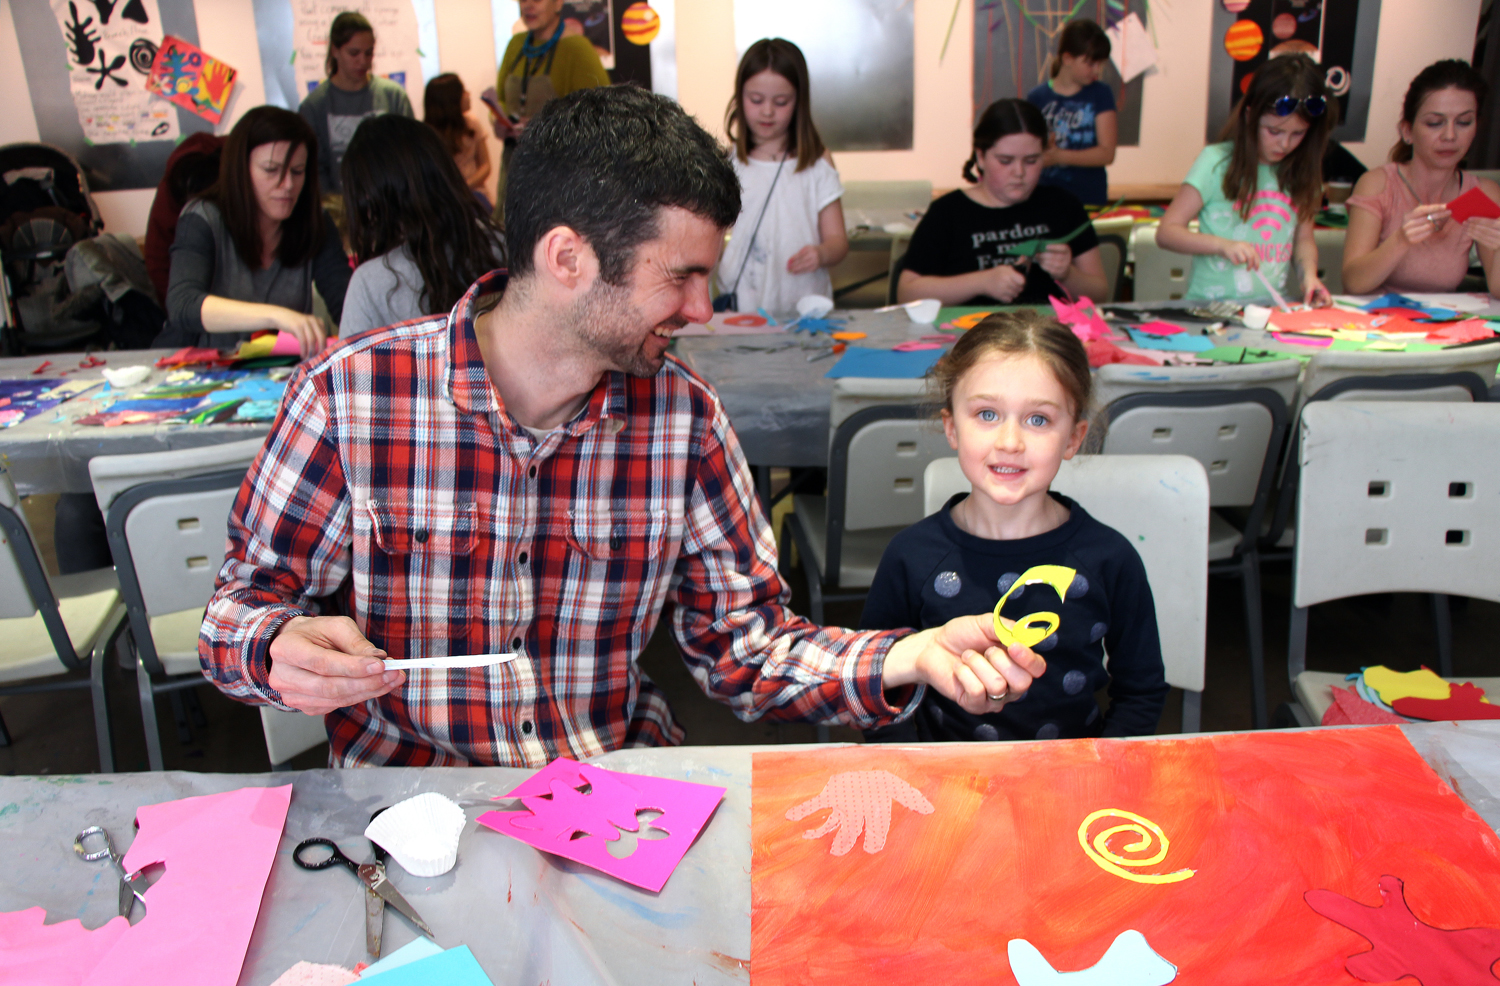 Families participating in art workshop at the MacLaren Art Centre